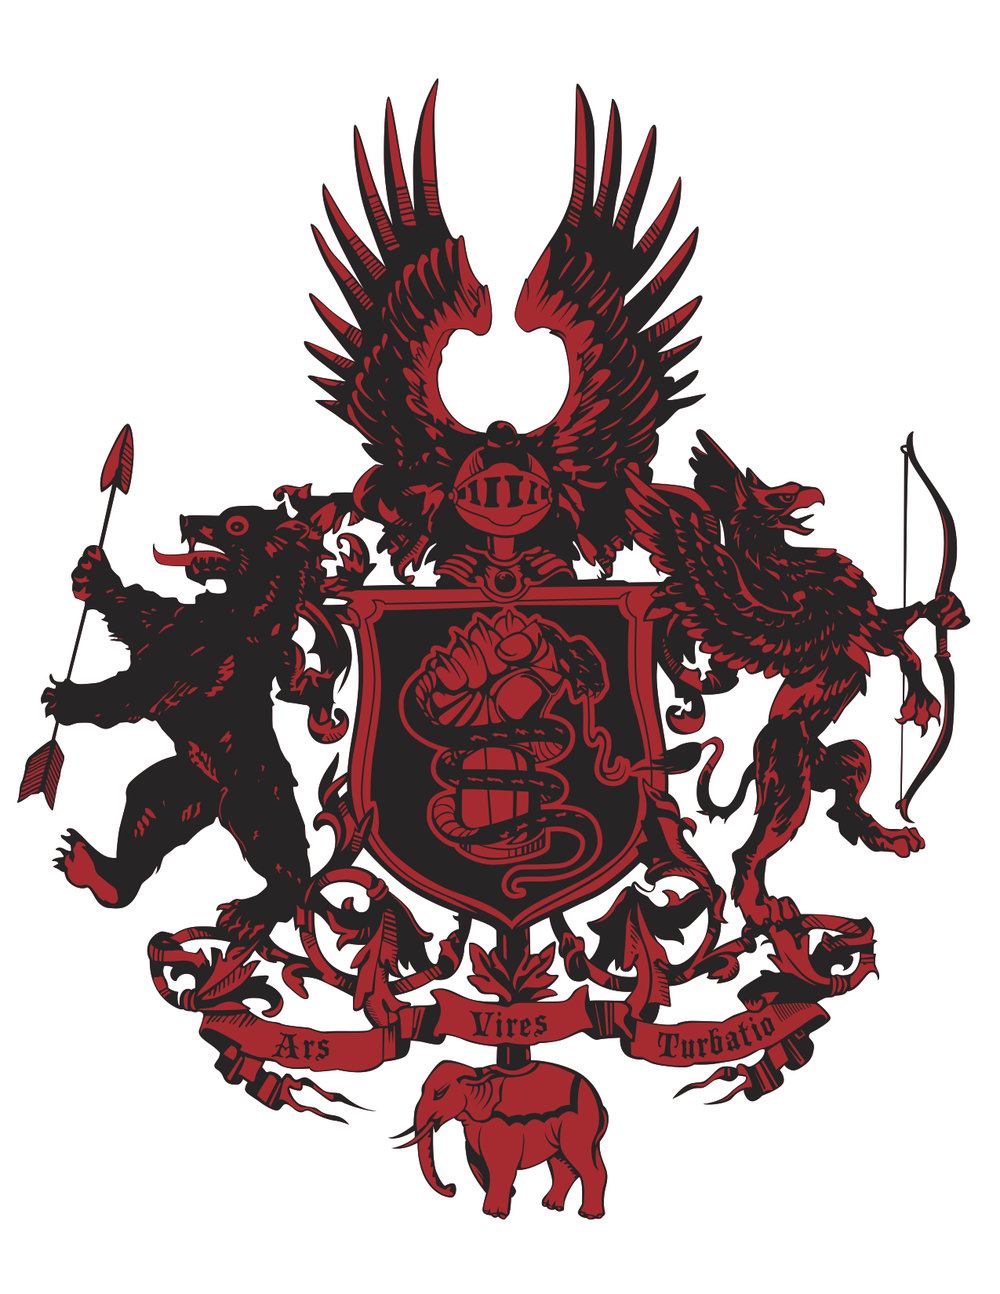 vanguard-crest-final-blackred copy.jpg